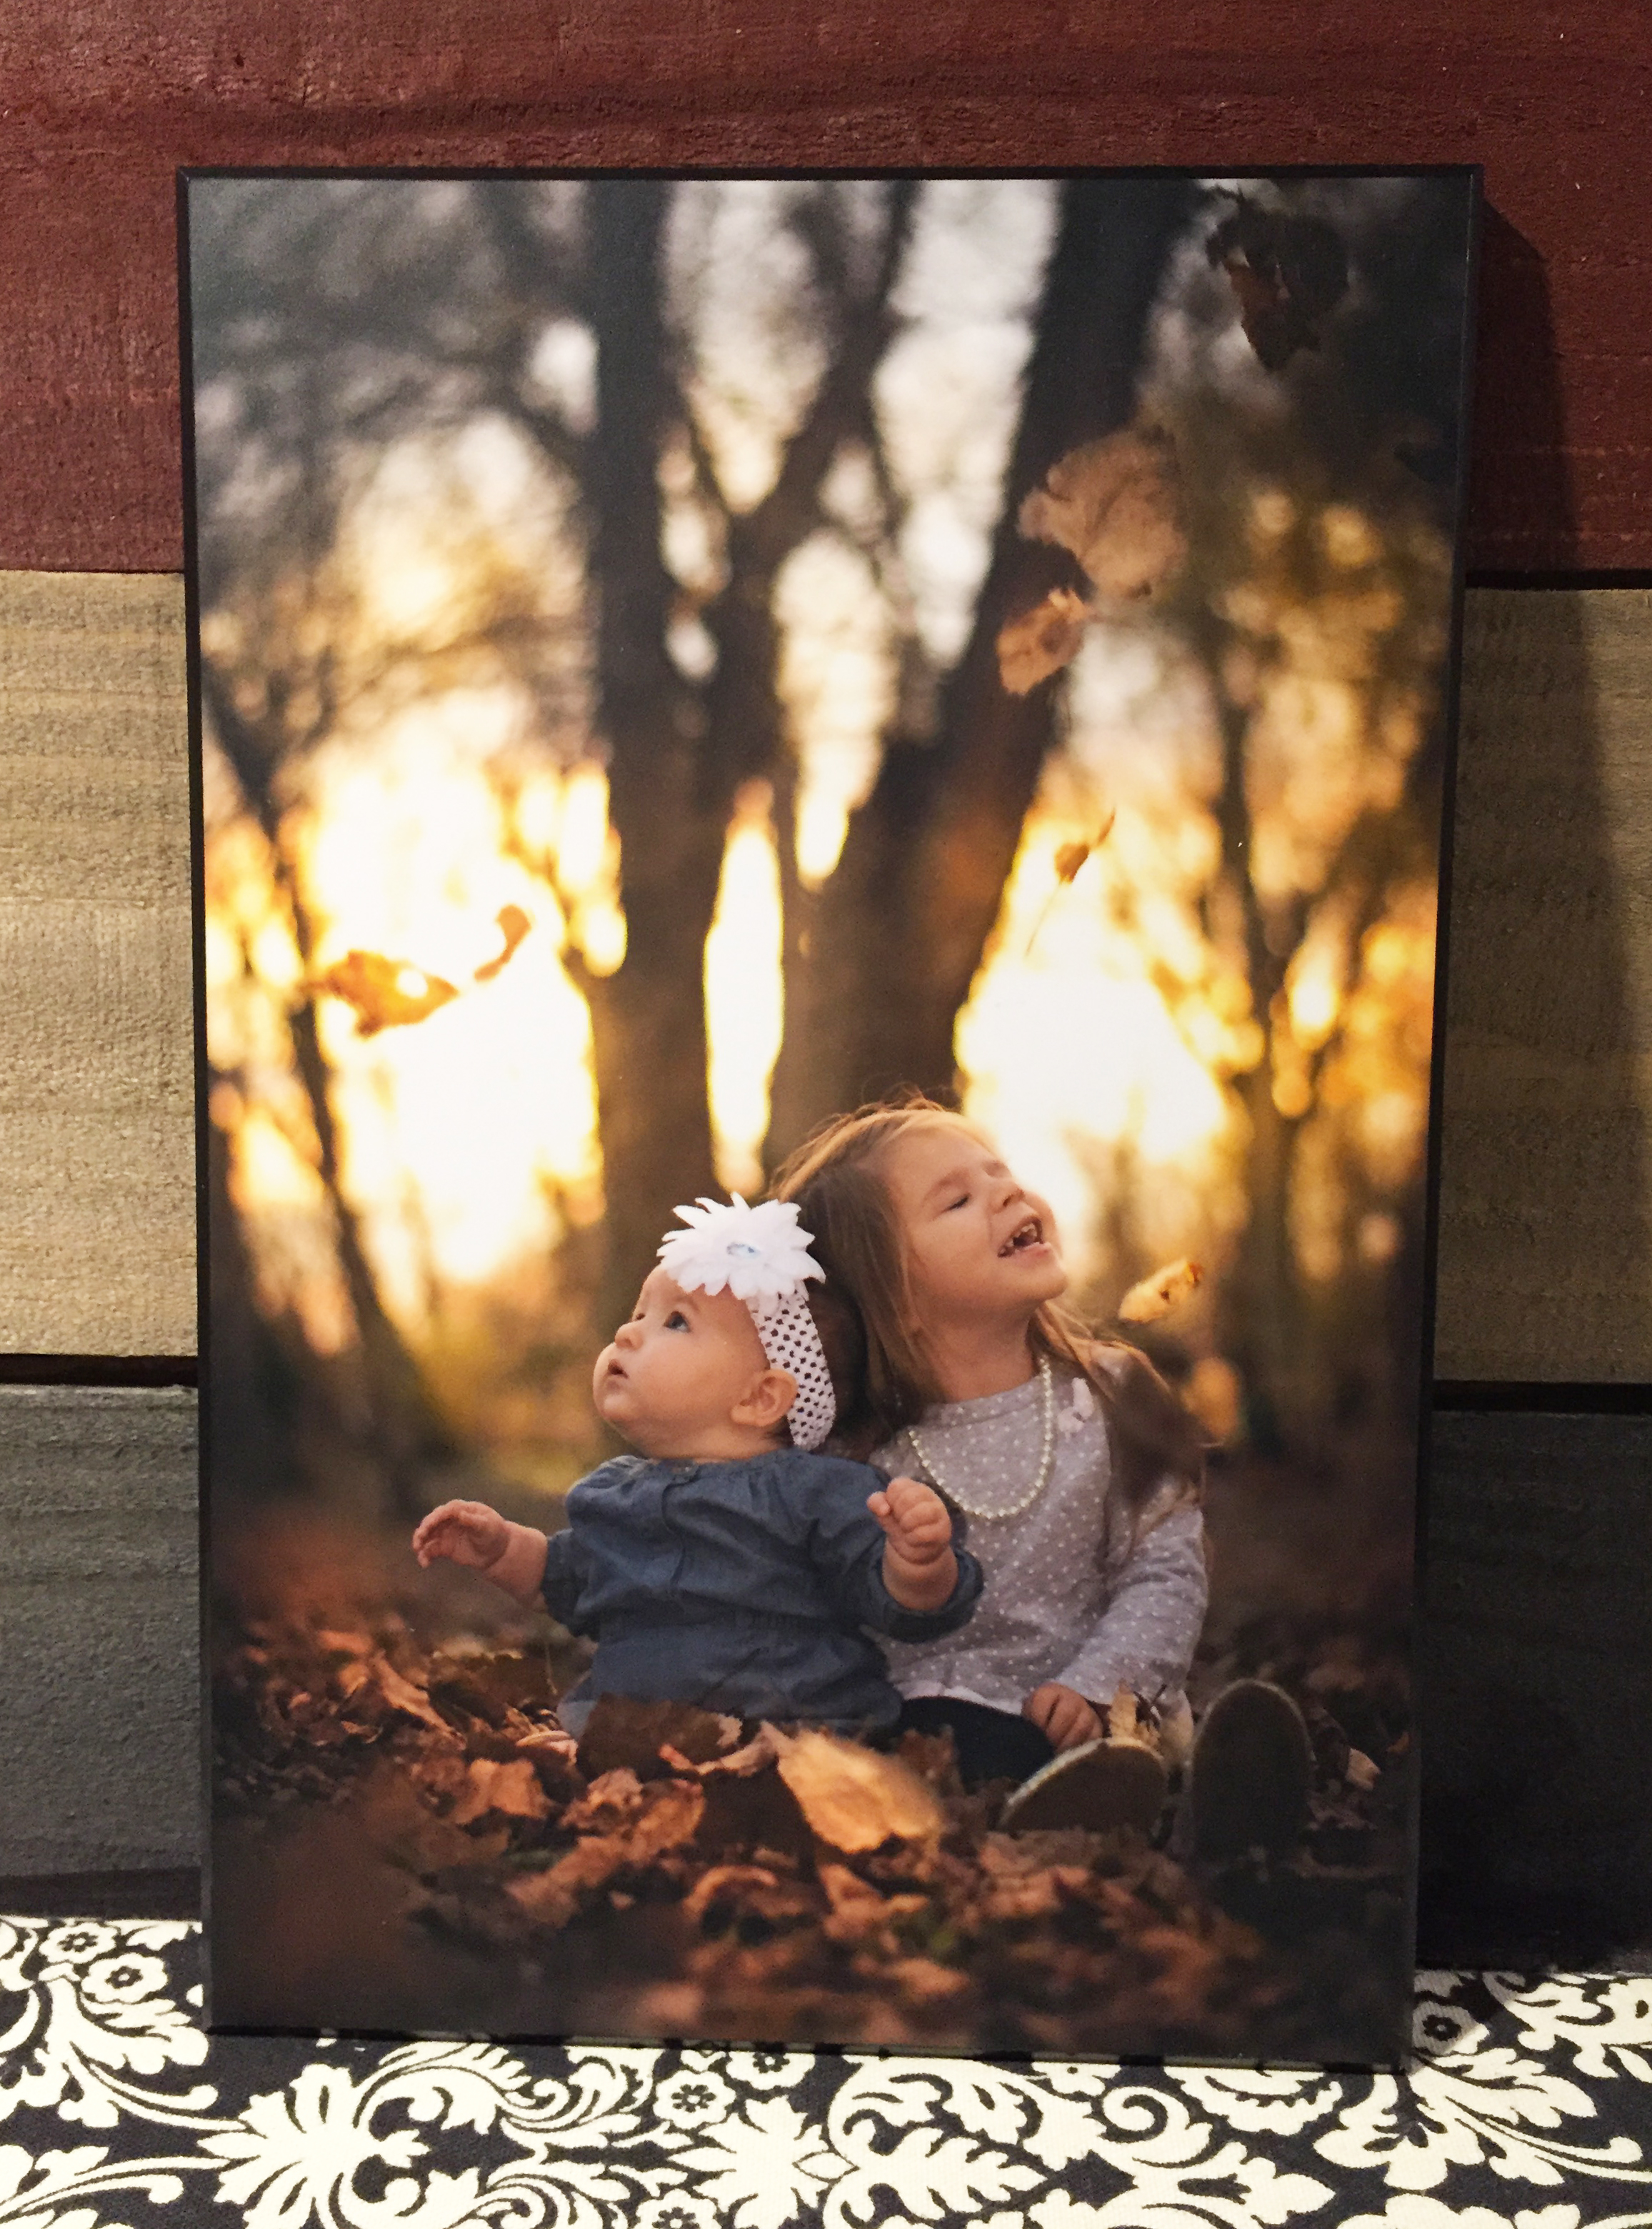 Plaque mounted photo with a clear yet soft matte finish